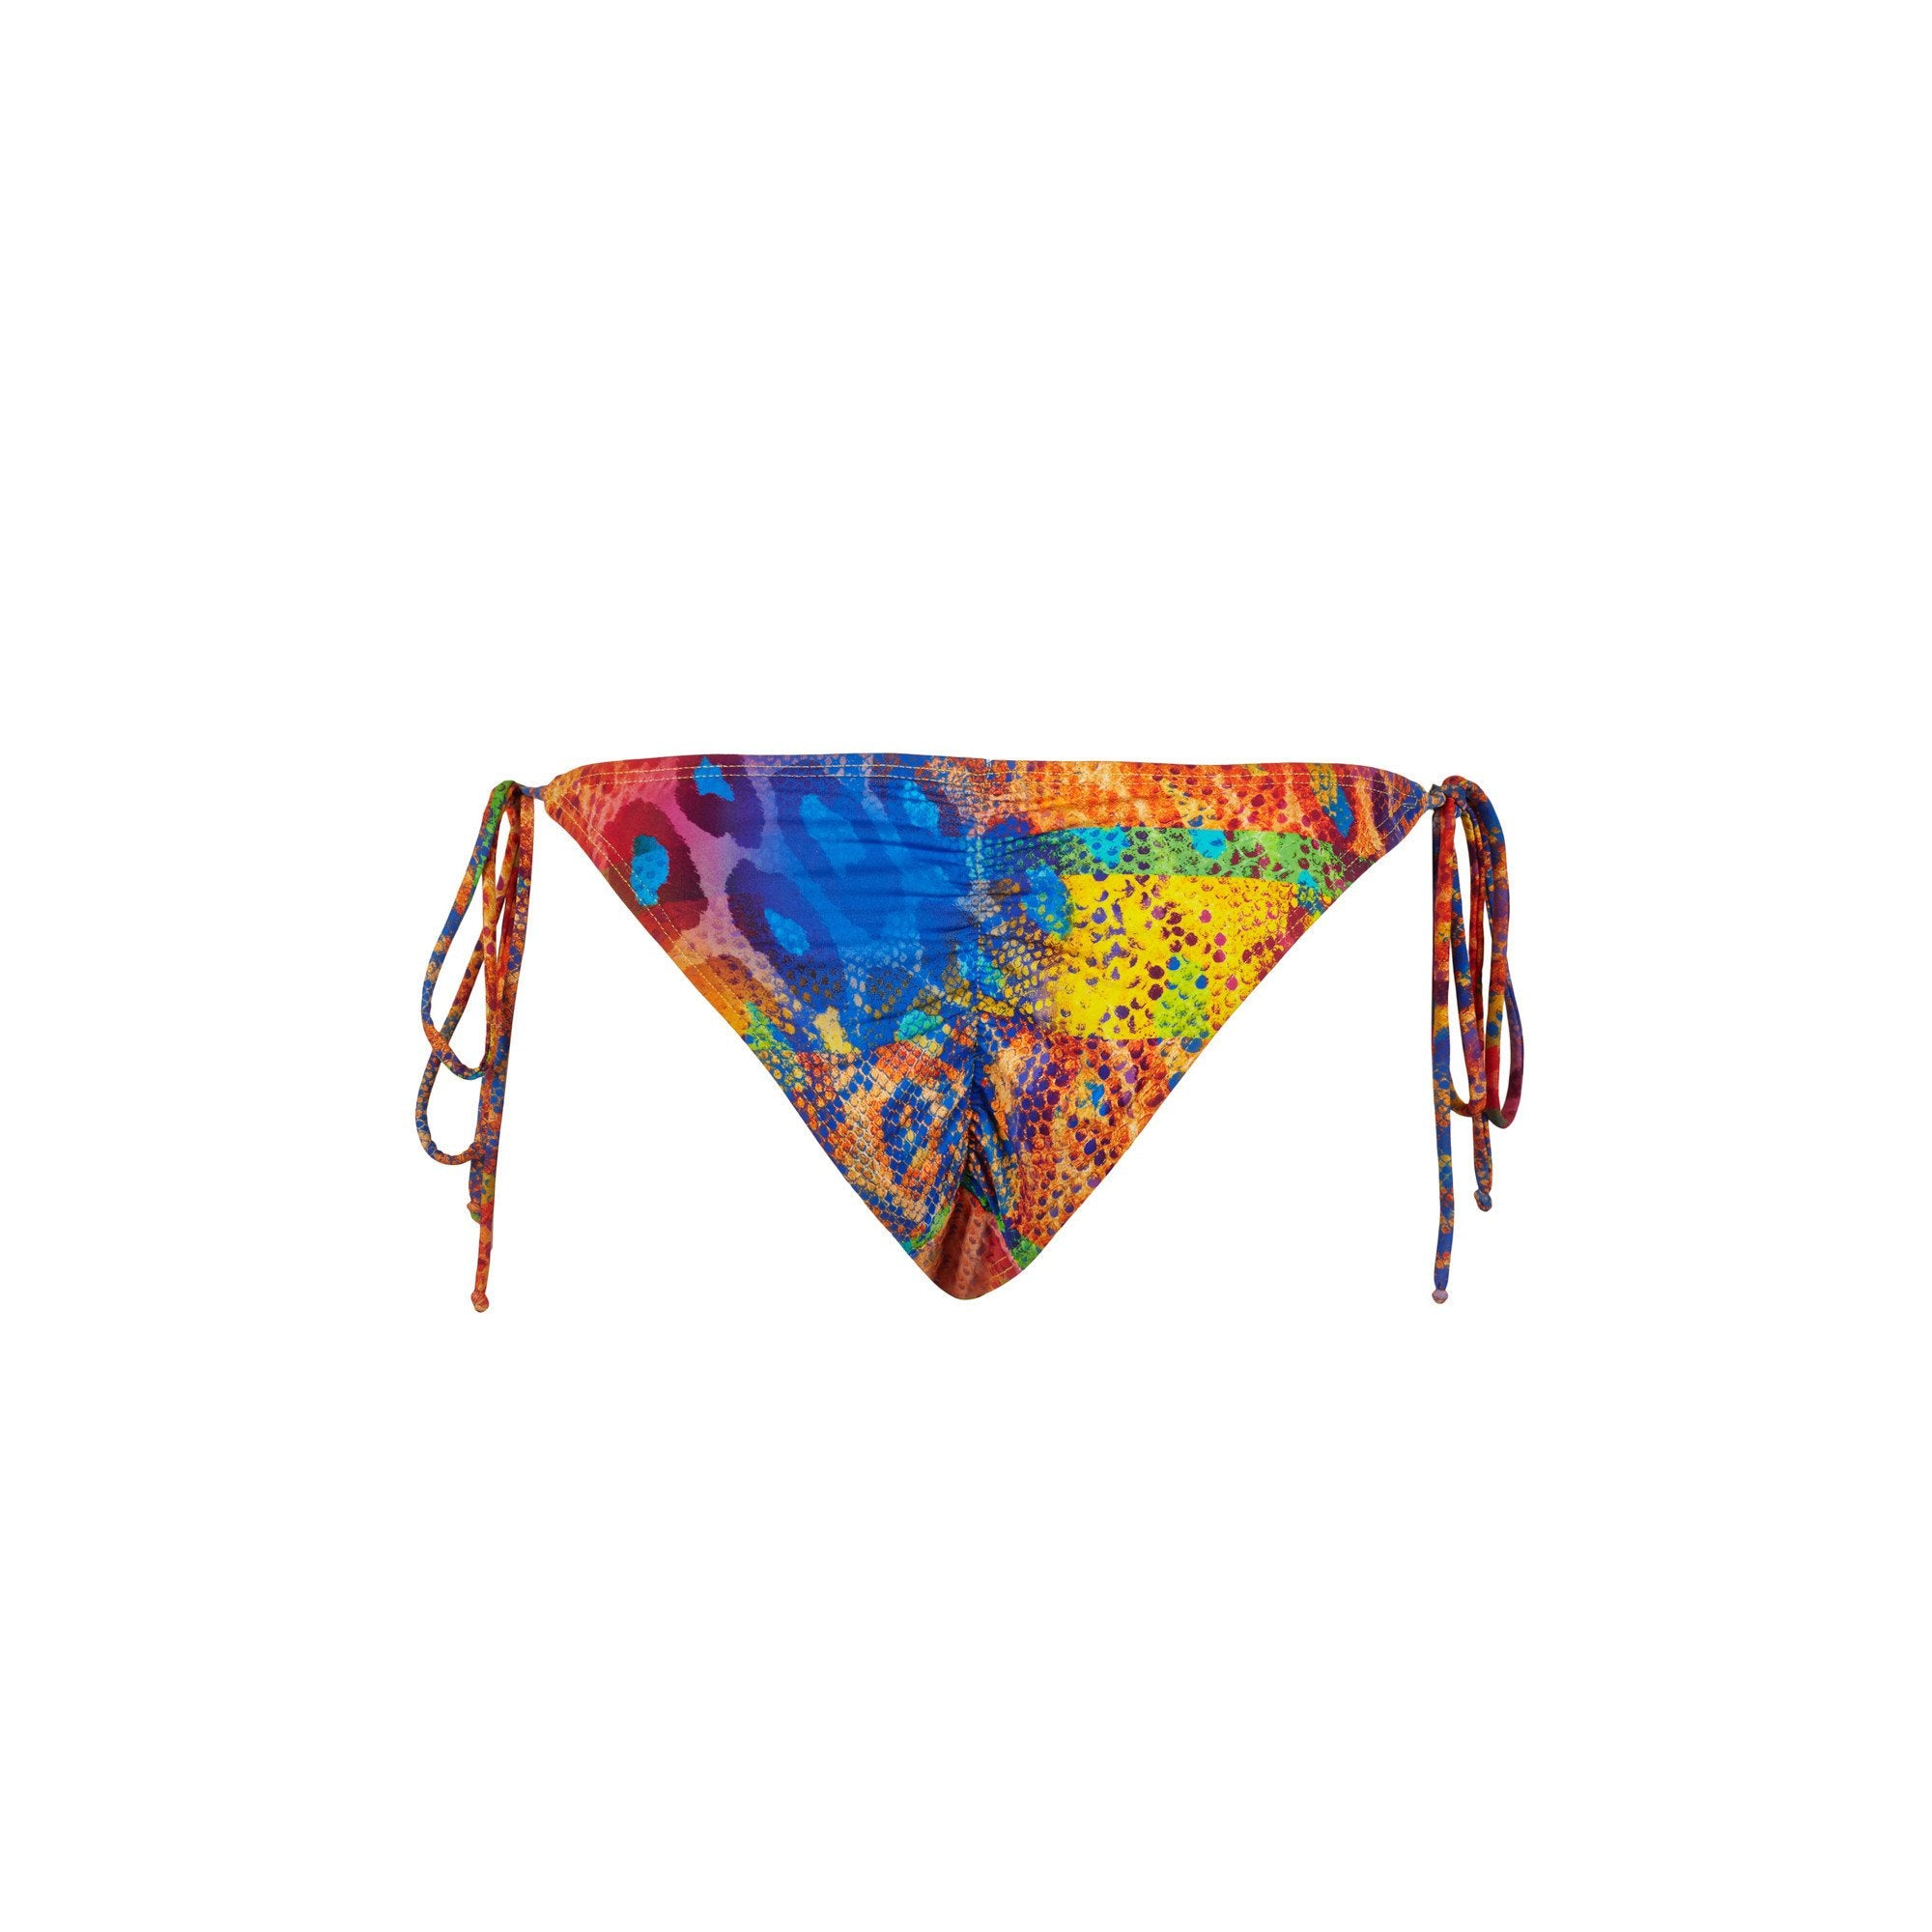 Chill Bikini Bottom in Tropical Skin | Beachwear | Tuhkana Swimwear | [product_tag] - Fair Bazaar Ethical Living